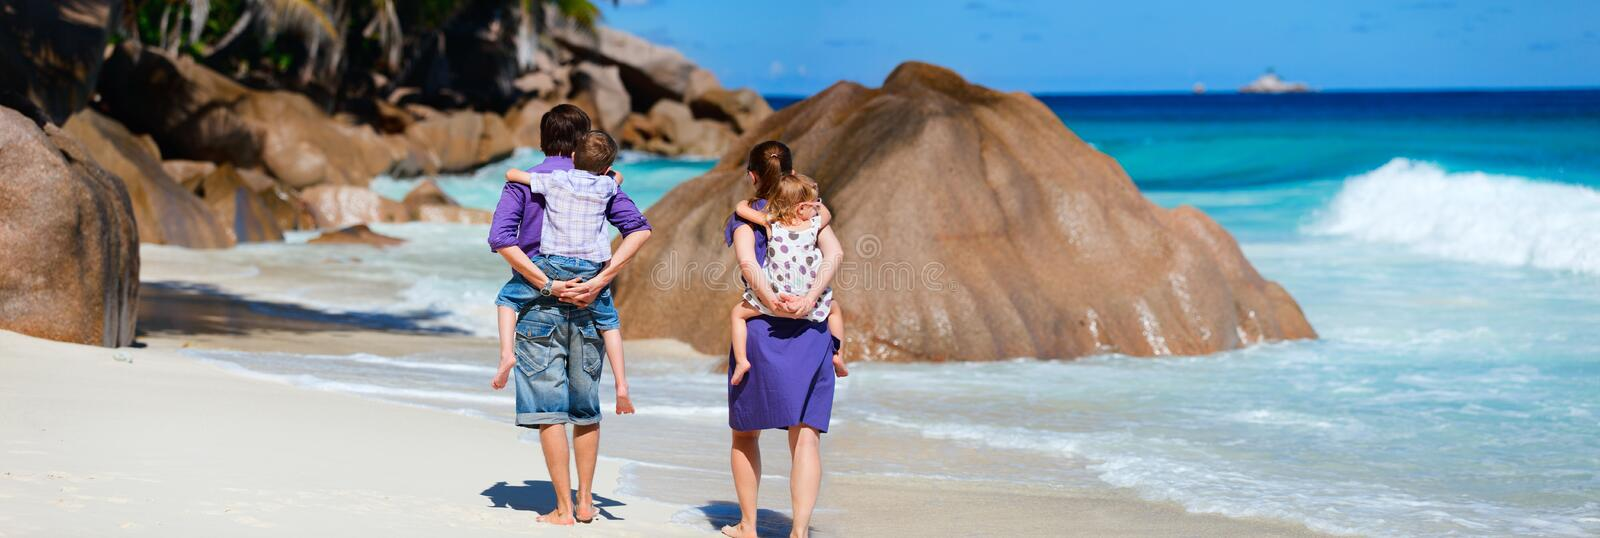 Download Panoramic Photo Of Family On Vacation Stock Images - Image: 17815844